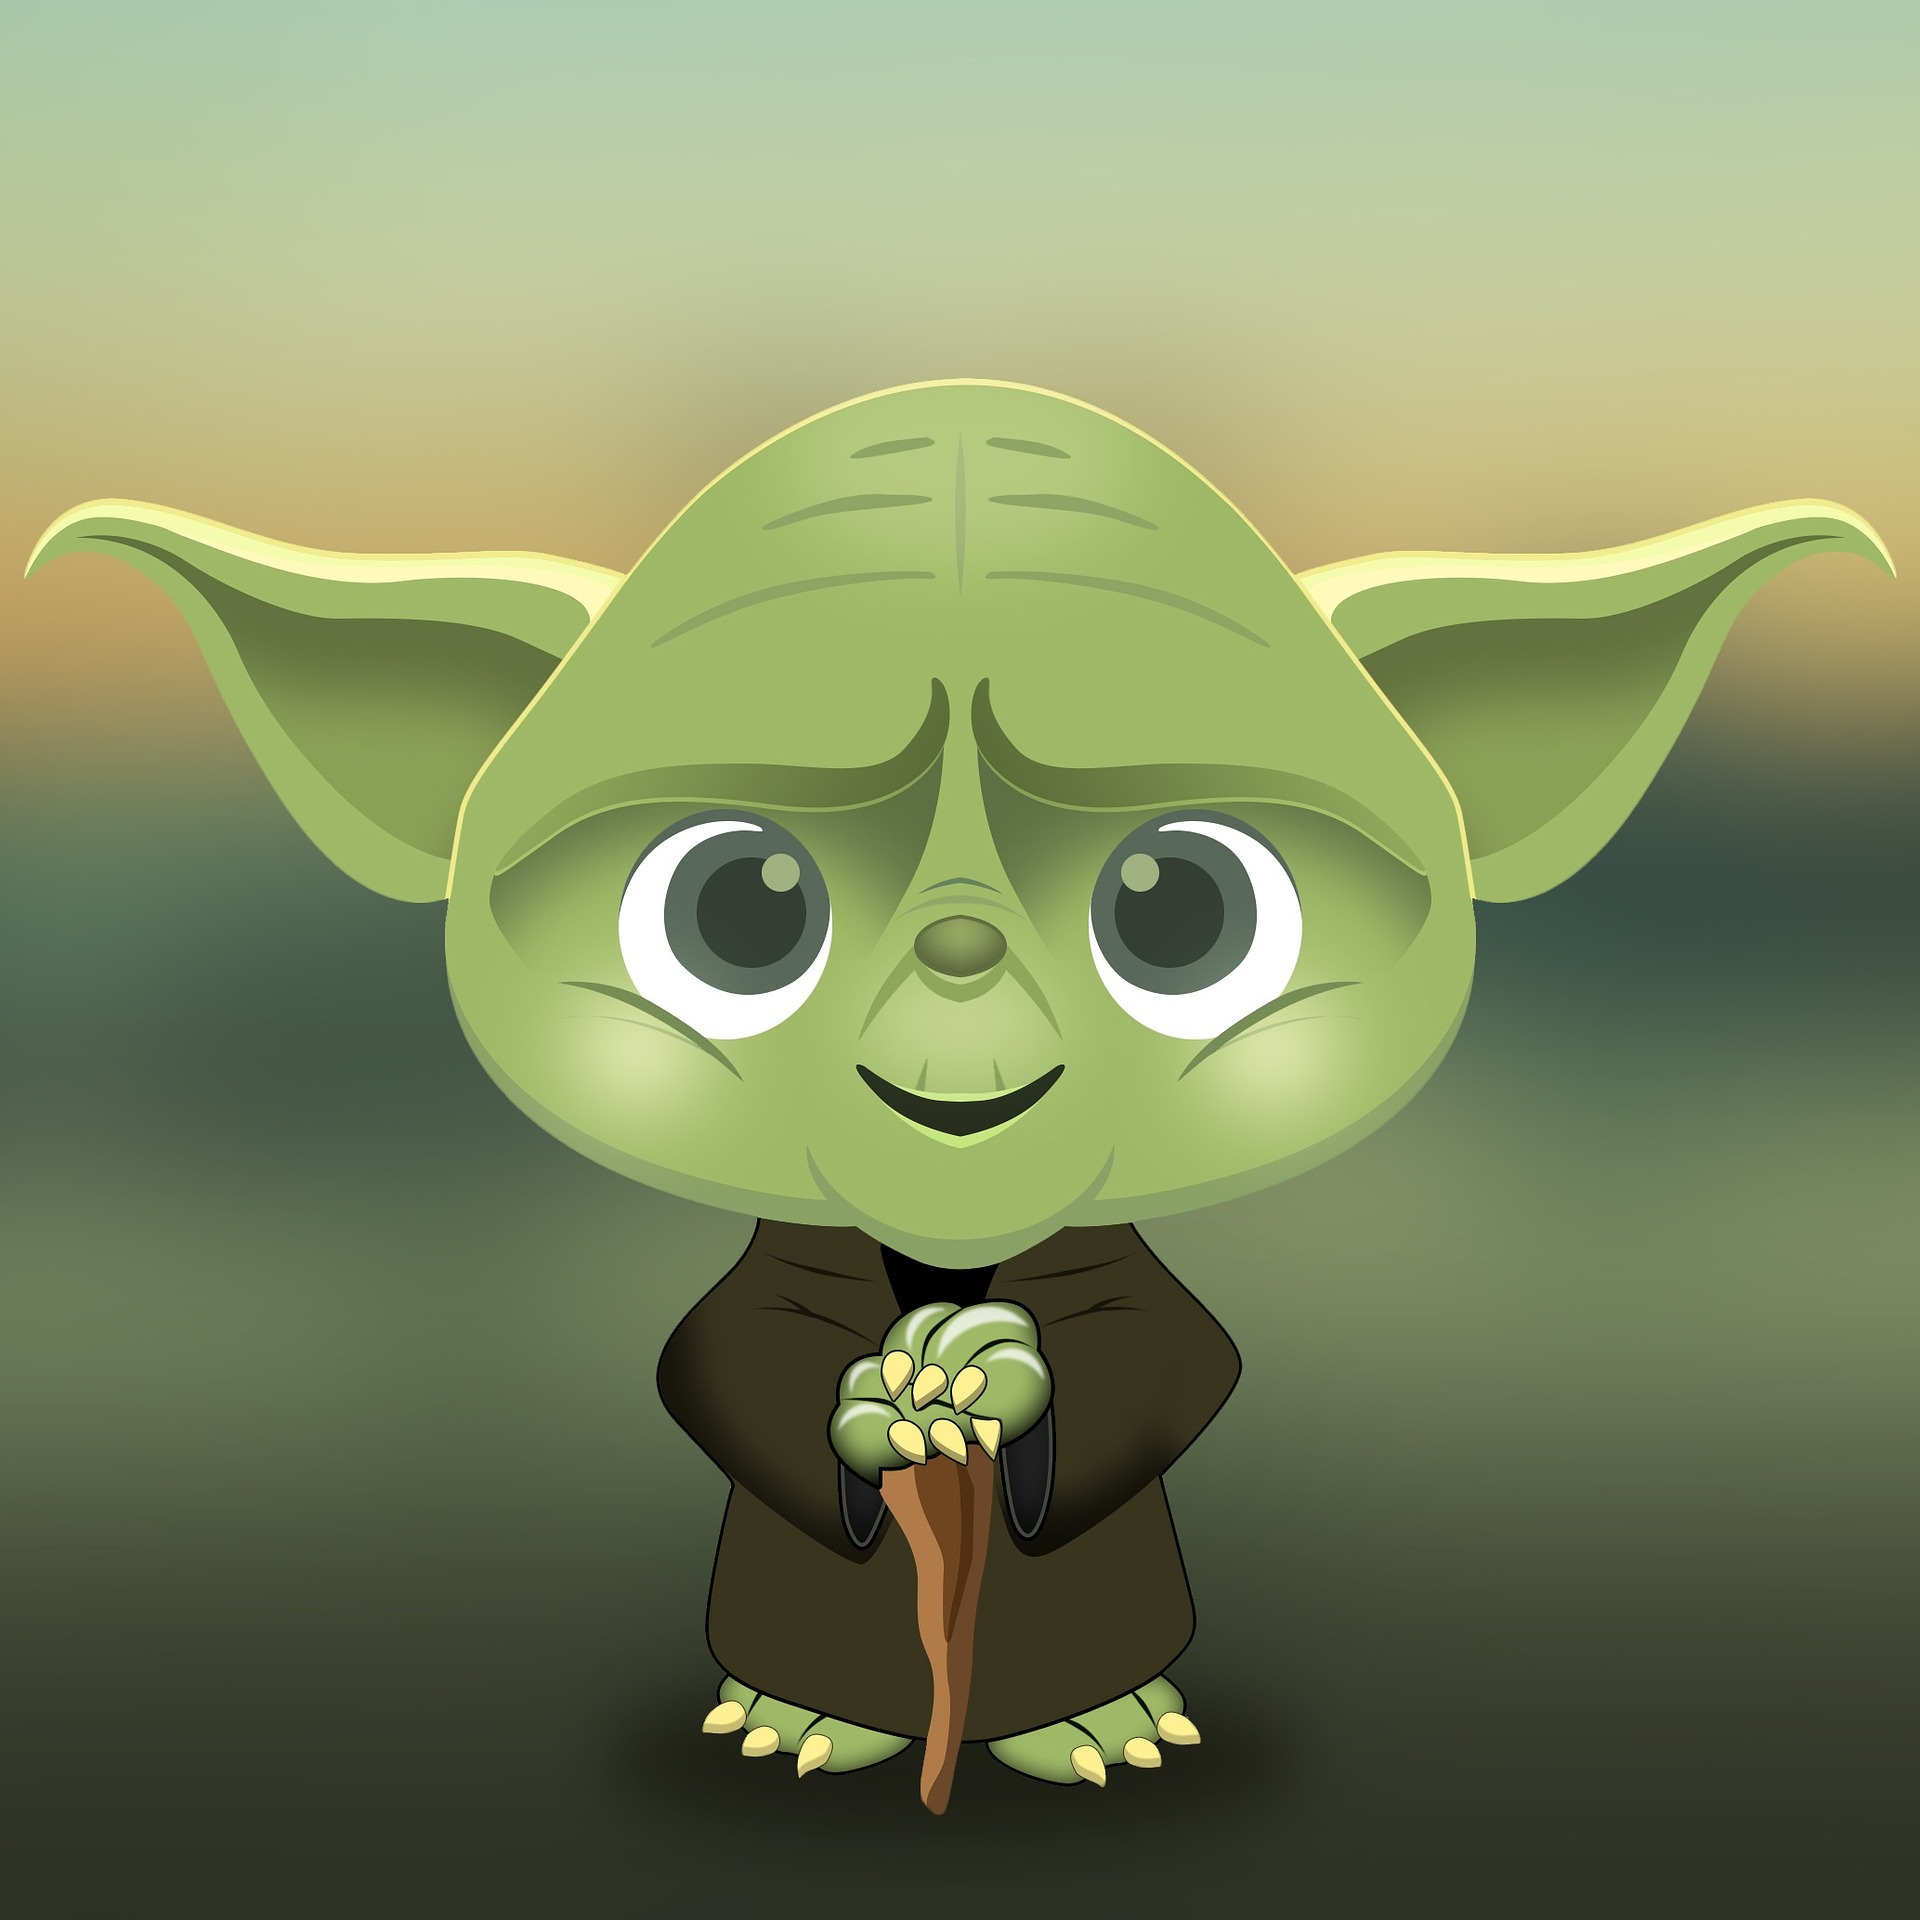 If Yoda could lift Luke's X-Wing out of a swamp with his mind, I think you can use it to lift a small dumbbell.